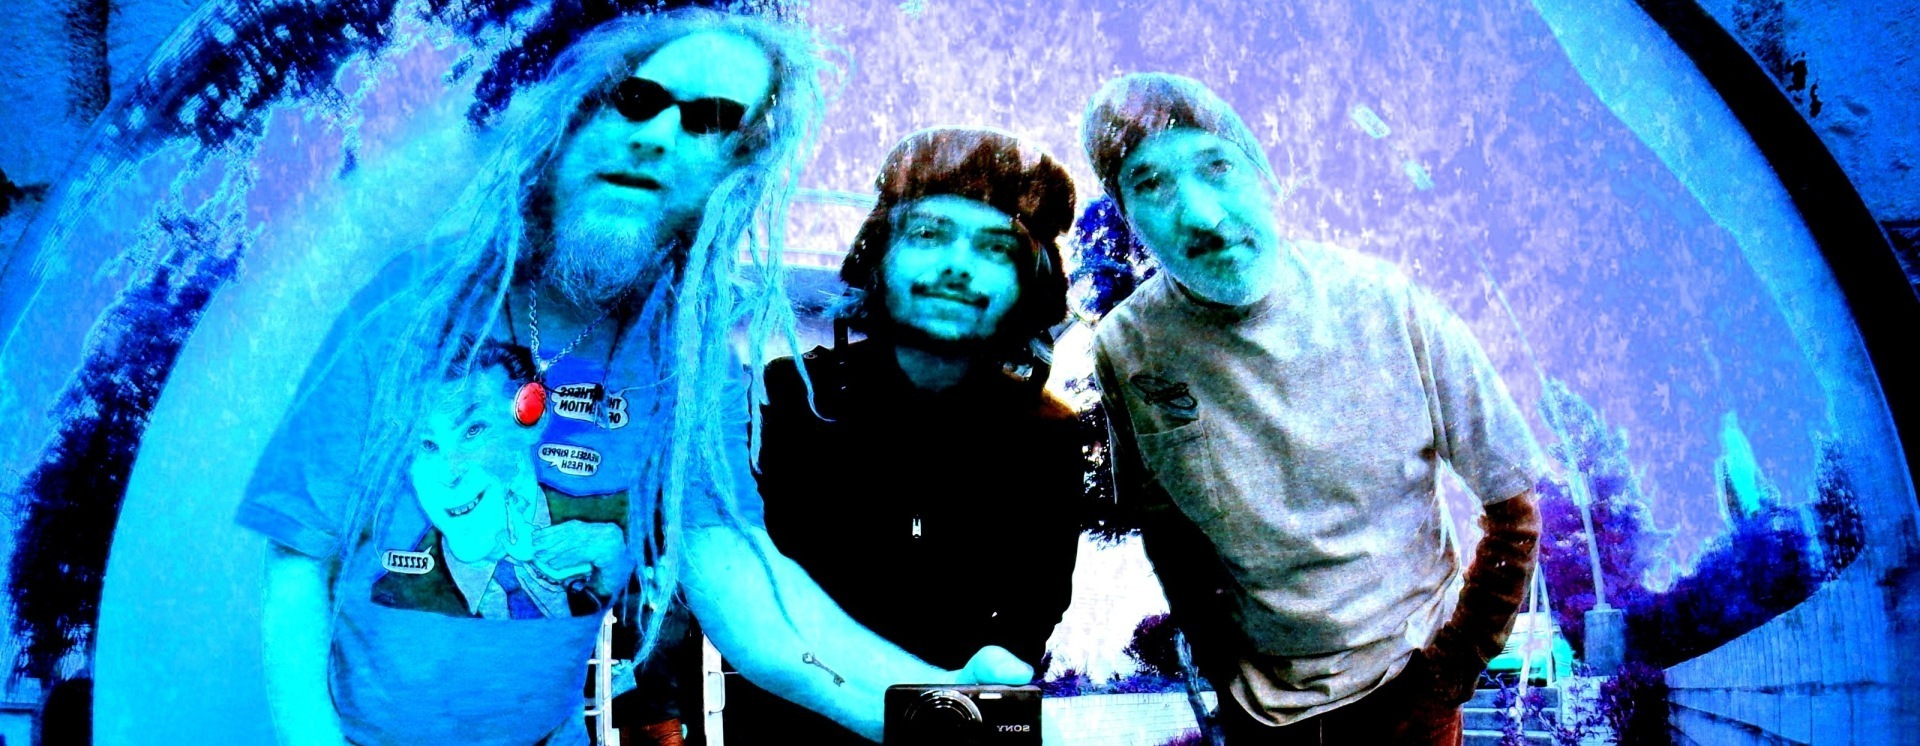 1394009570 stoned and beautiful promo picture jpg copy